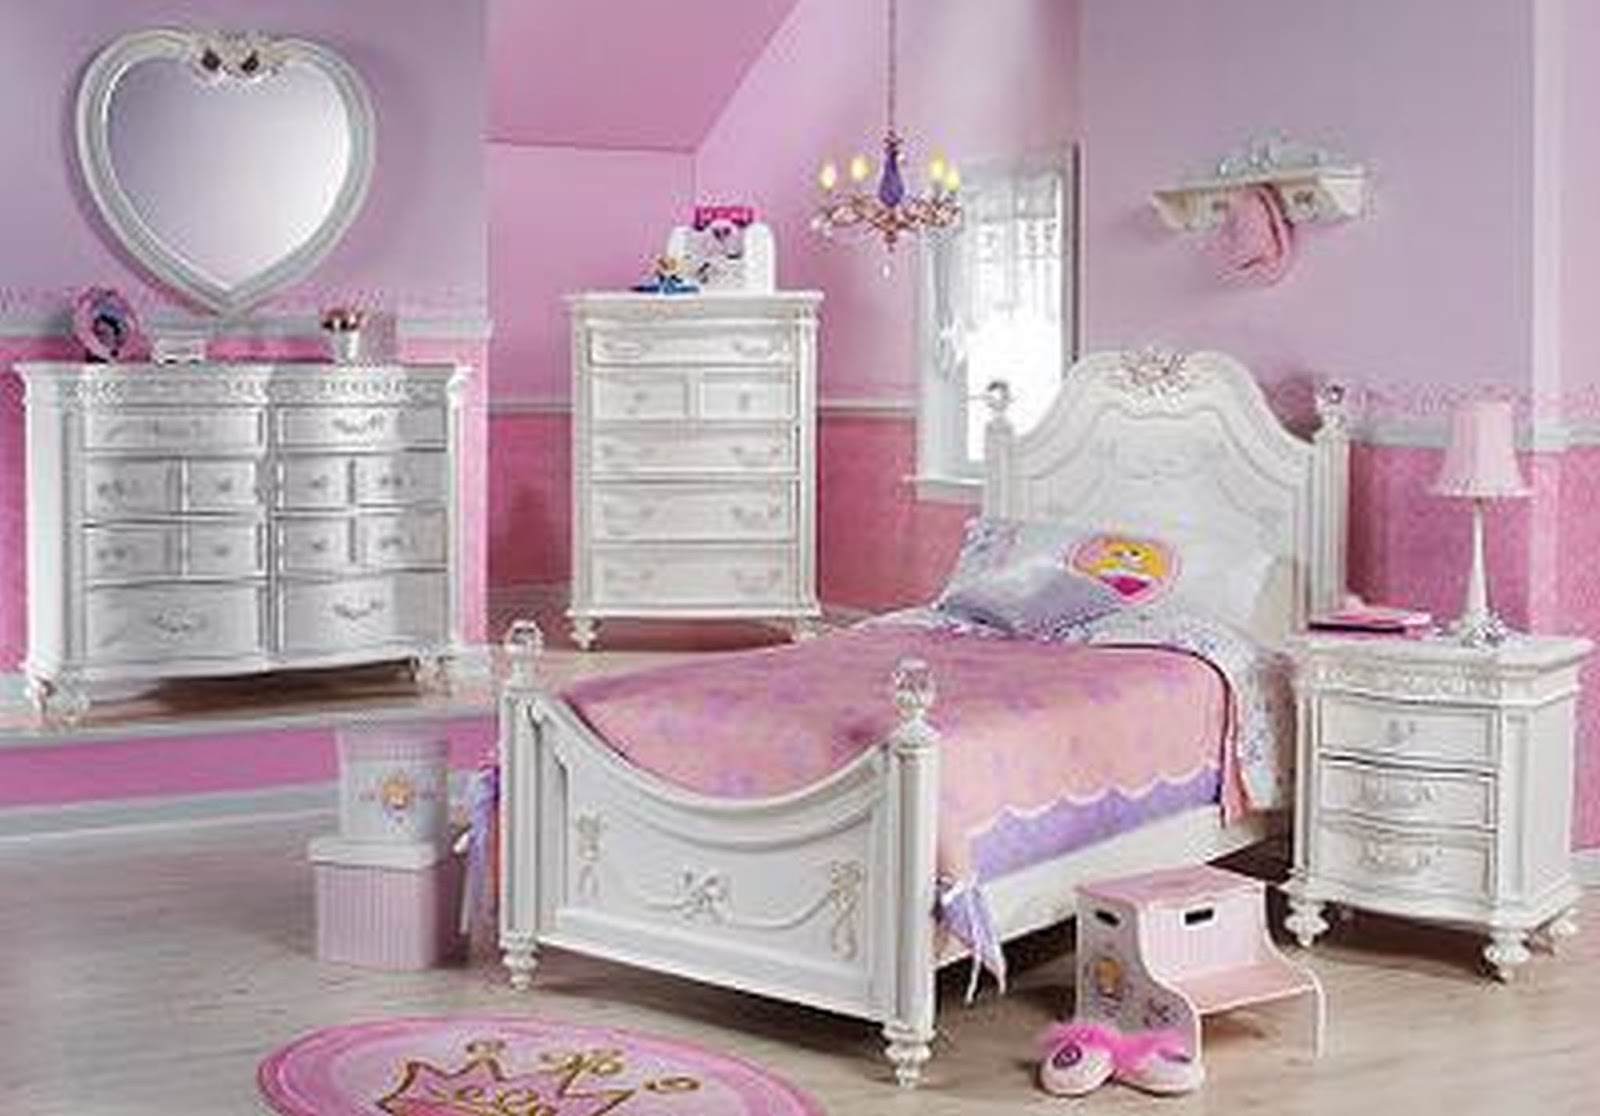 Pink bedrooms for little girls - Girl Bedroom Ideas Regarding Girls